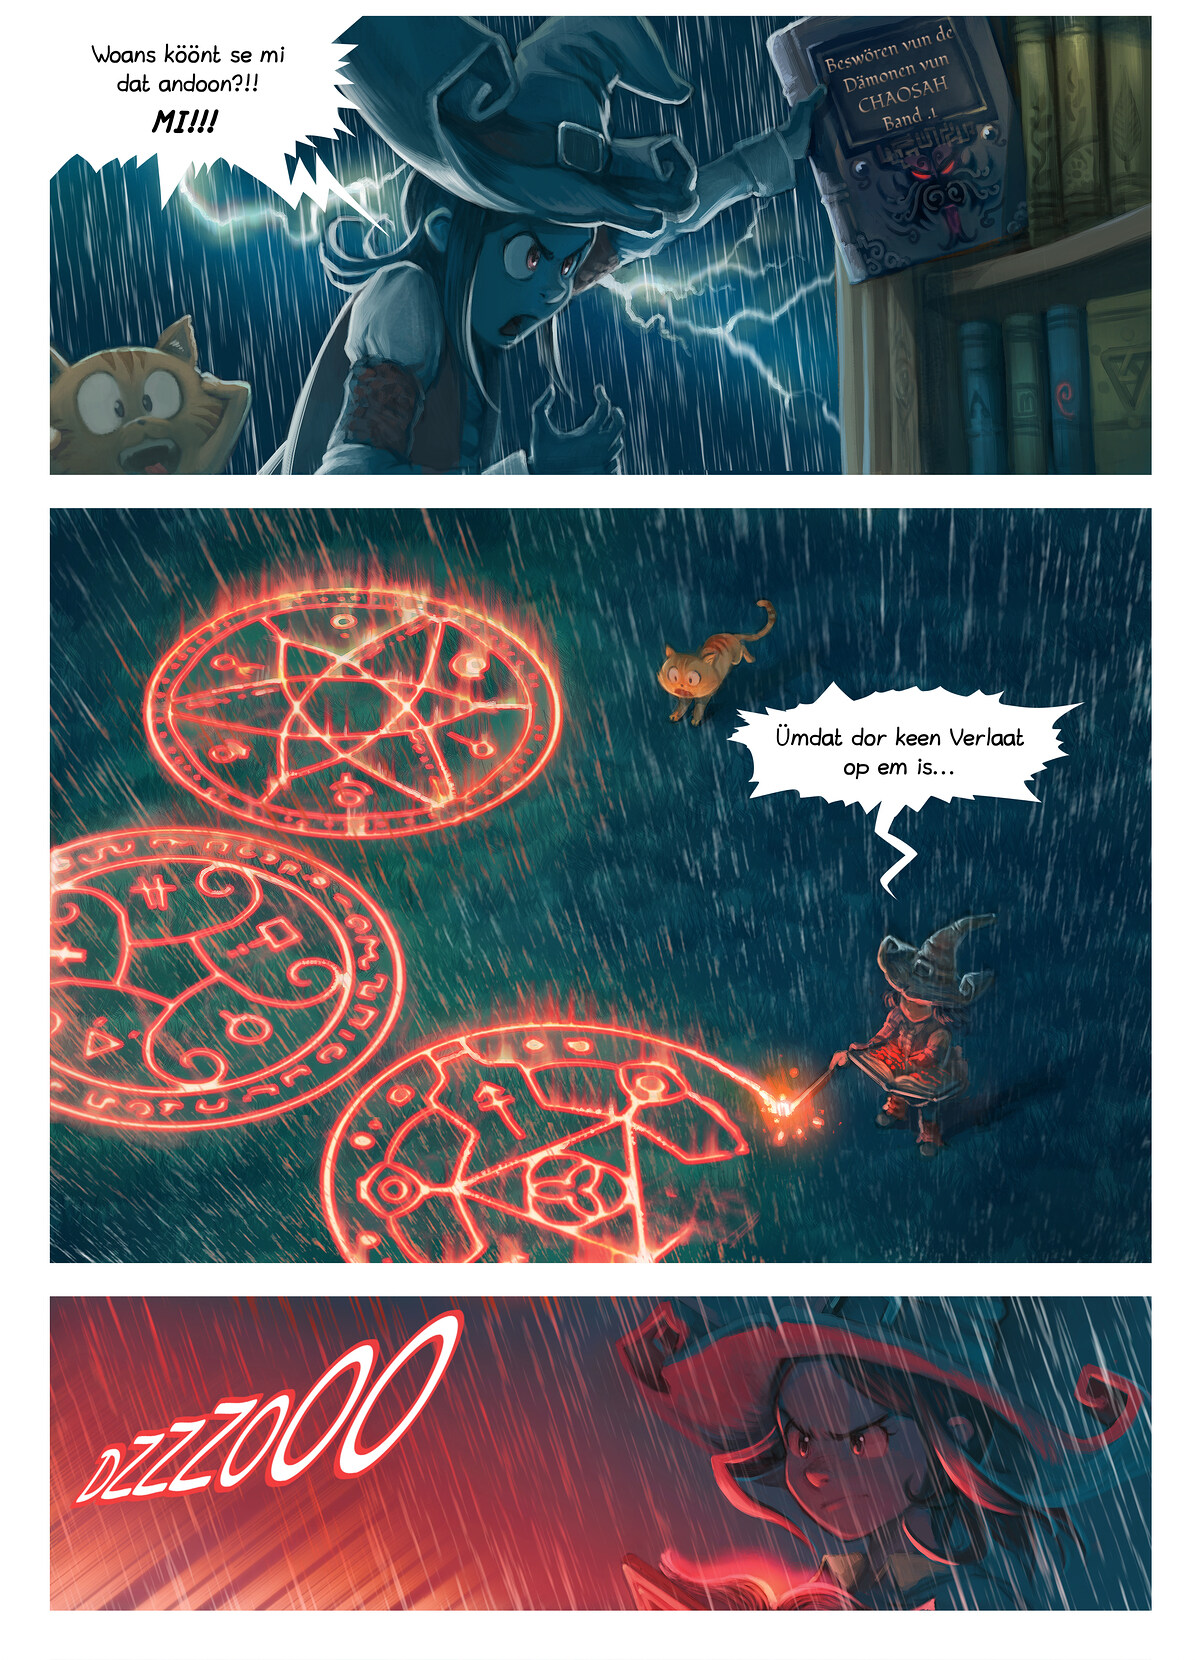 A webcomic page of Pepper&Carrot, Folg 8 [ns], Siet 5